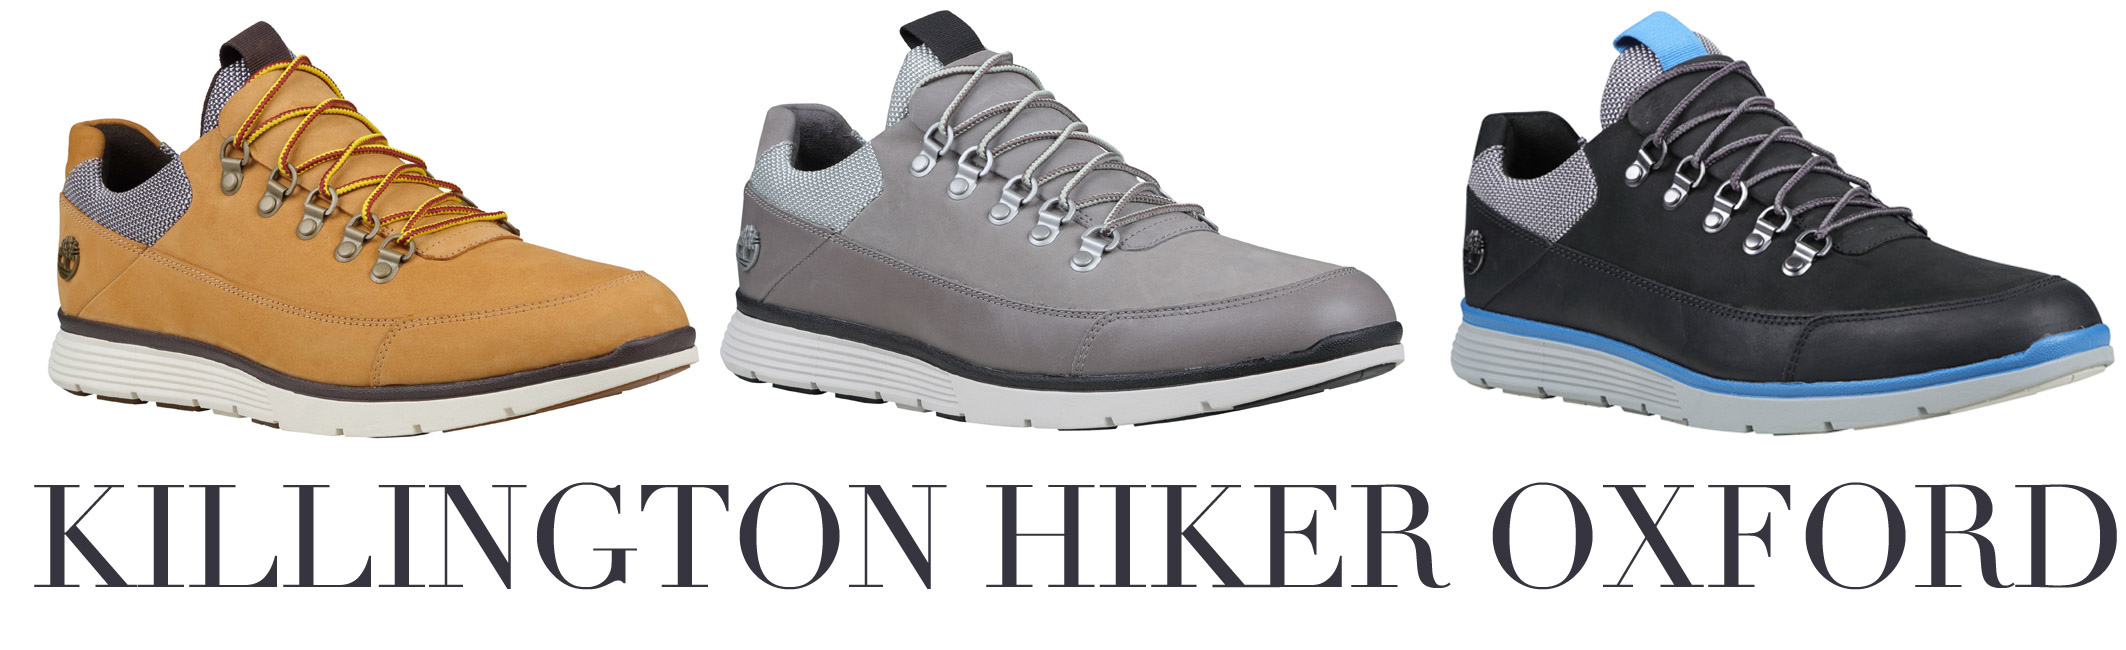 KillingtonHikerOxford